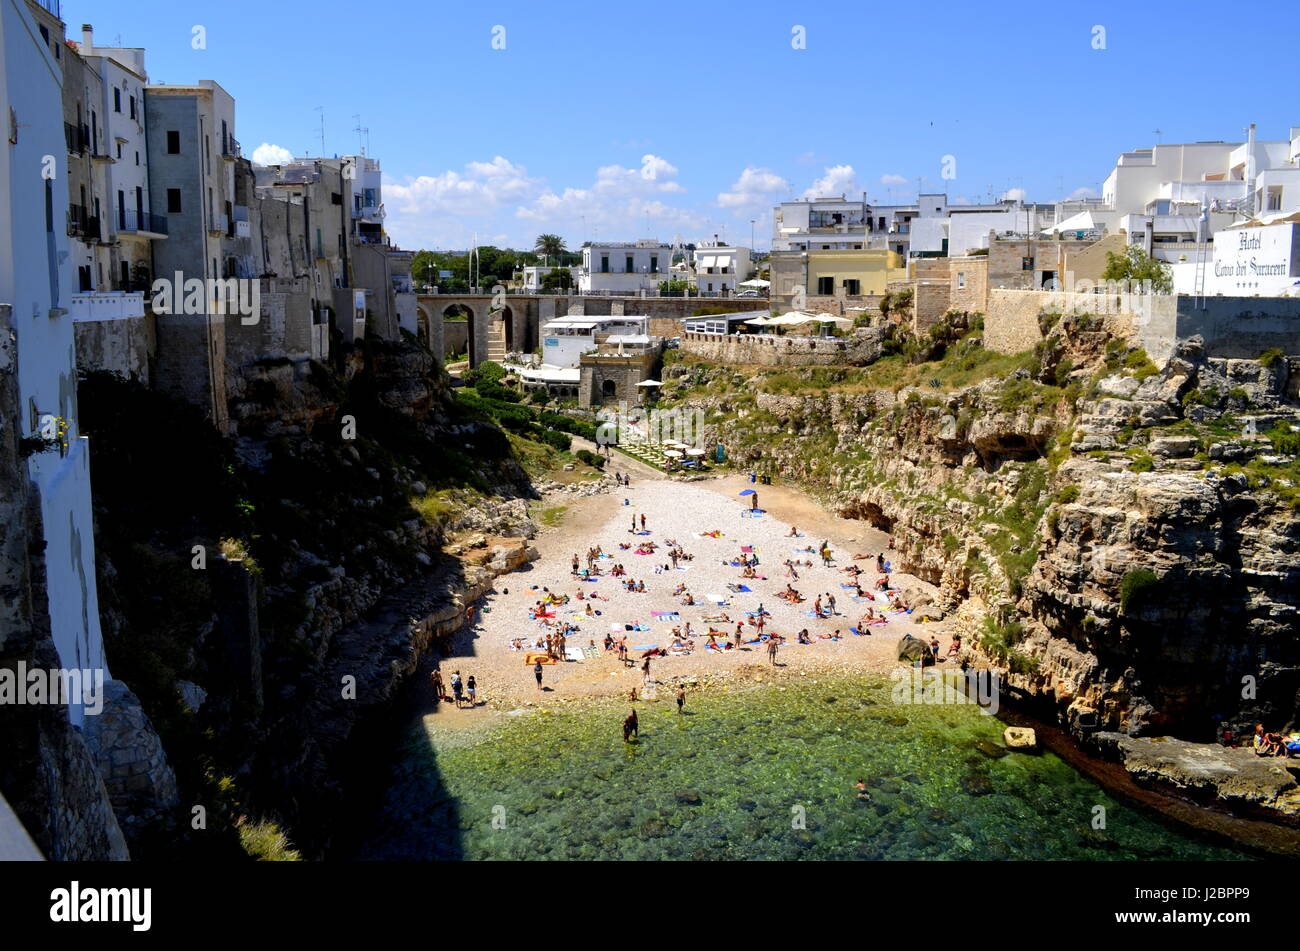 This photo was taken at Polignano a Mare,a place located in south of Italy. - Stock Image